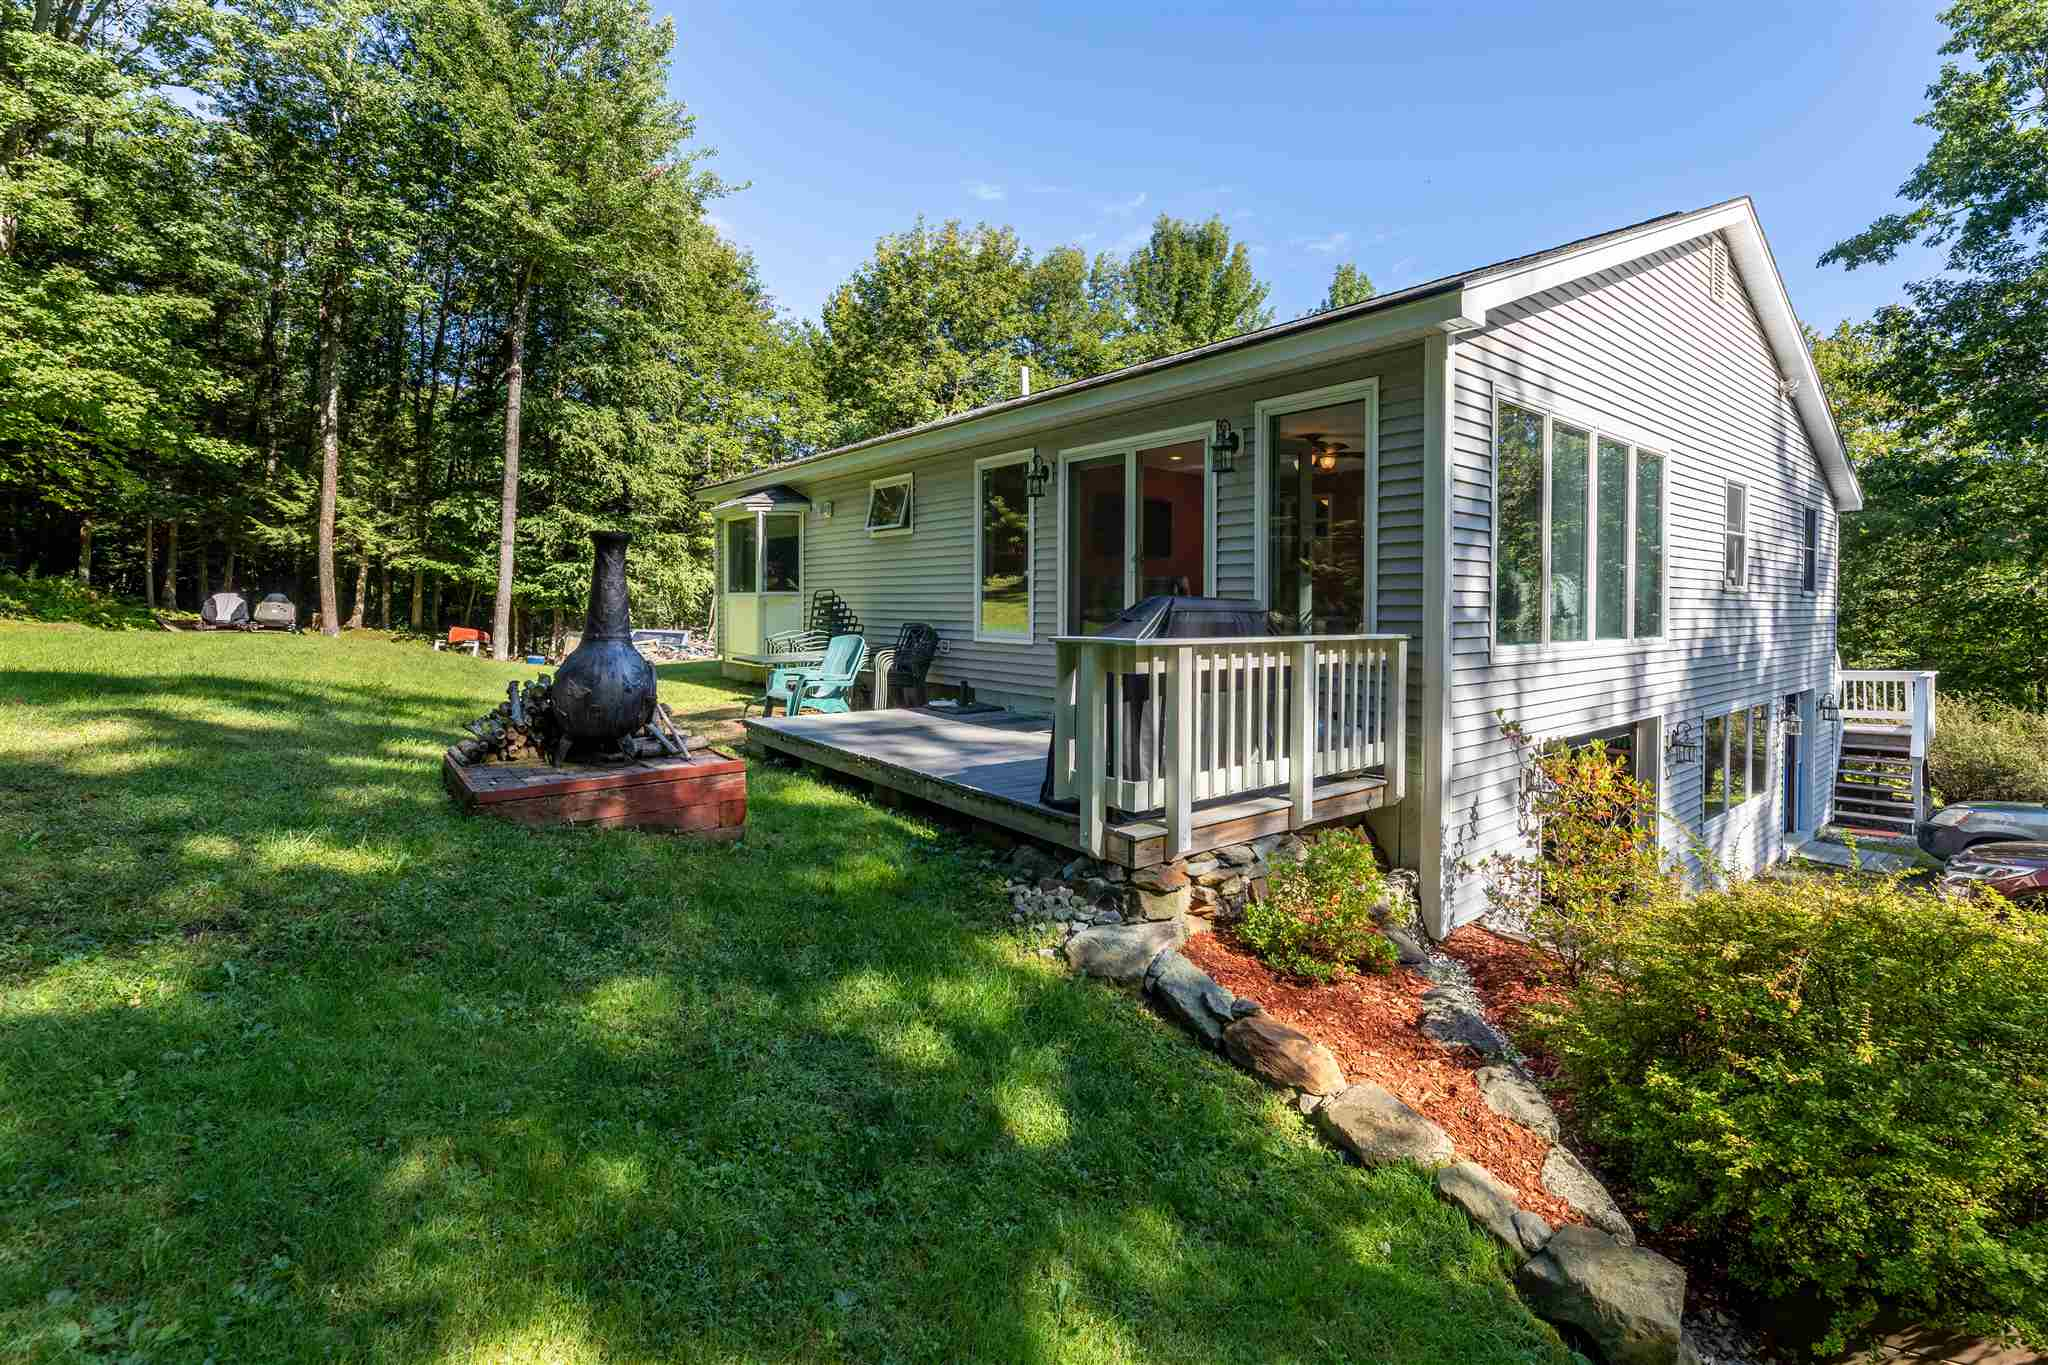 MLS 4827165: 90 Trues Brook Road, Lebanon NH